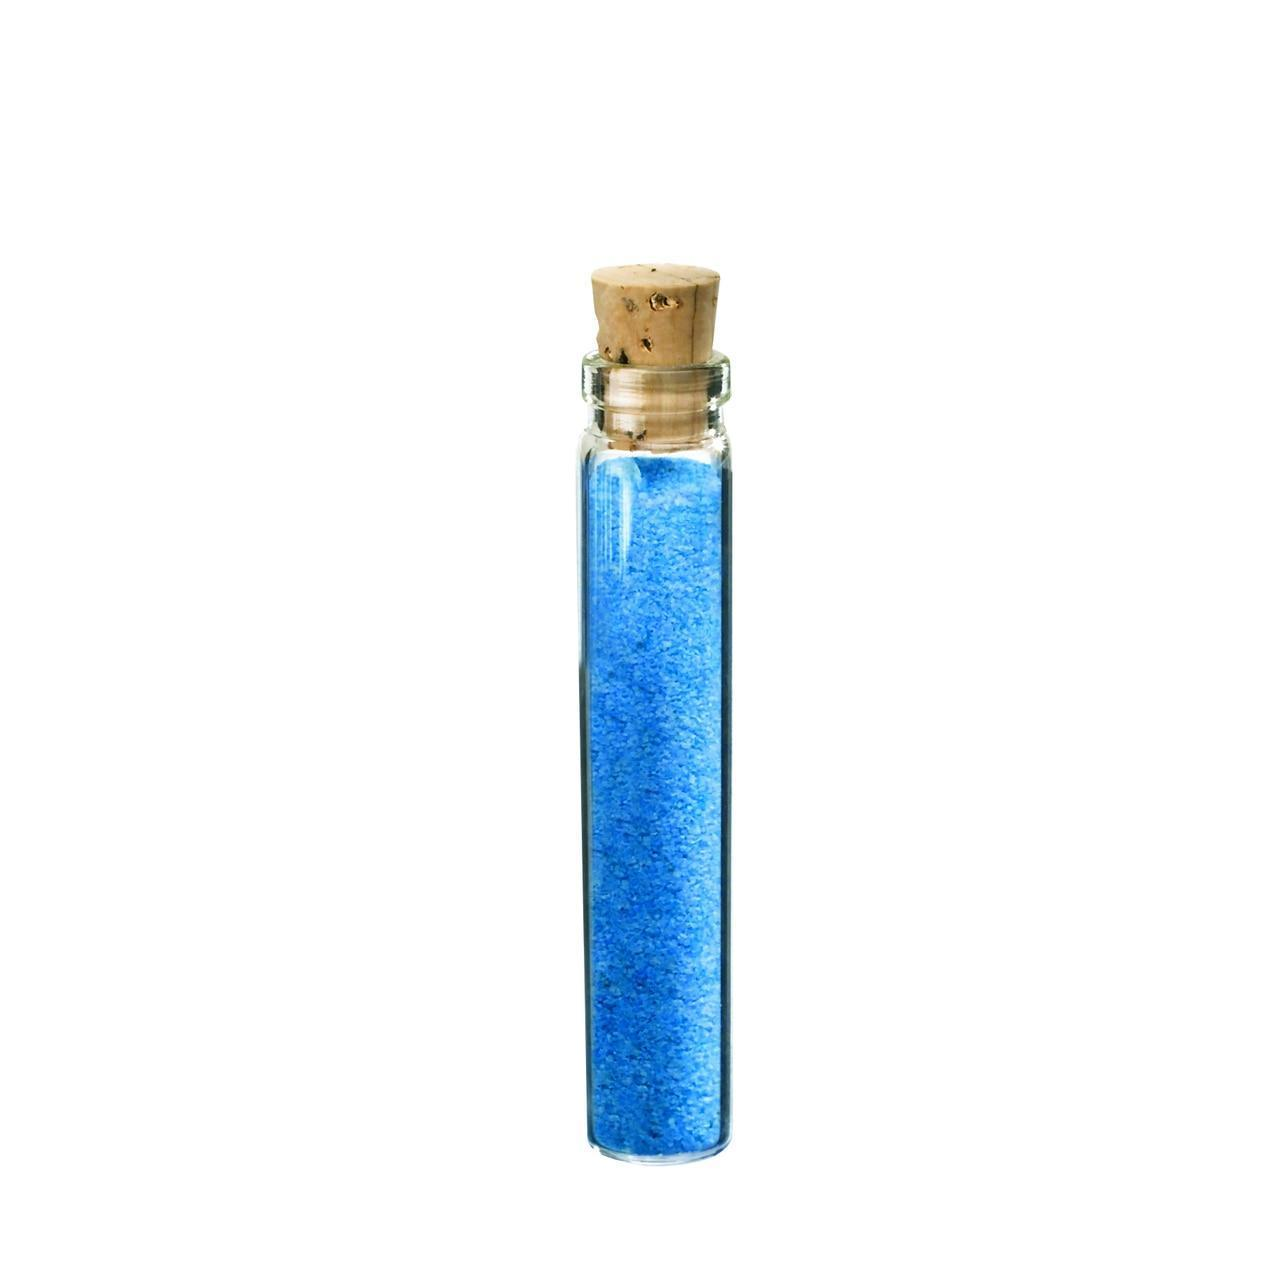 Cheap Aromatherapy & Essential Oils Containers Glass Corked Vials v4510B01 wholesale